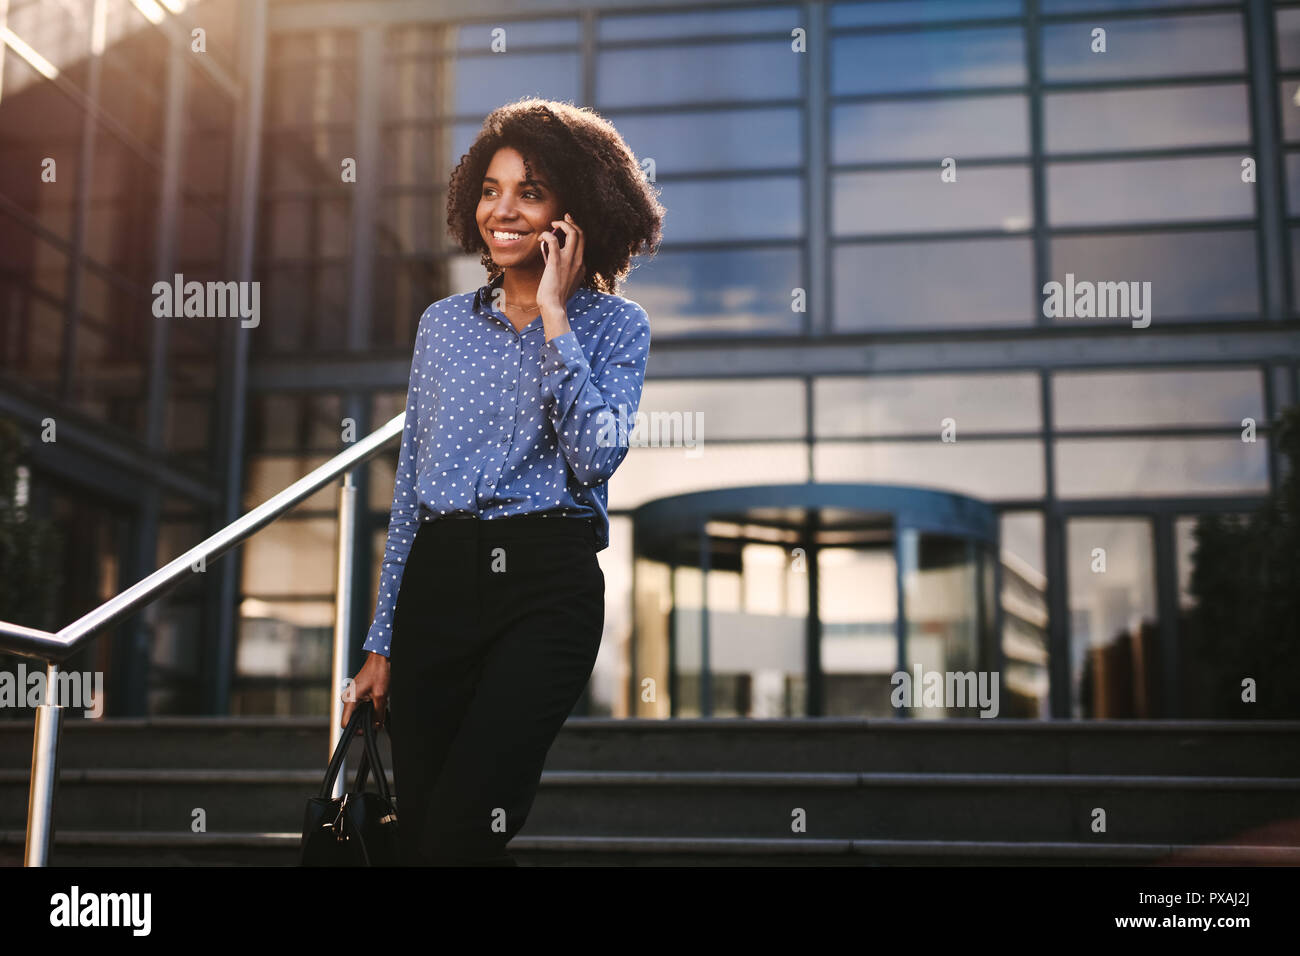 Woman walking down the steps outside office building and talking on mobile phone. Businesswoman talking on cell phone with office building in backgrou - Stock Image